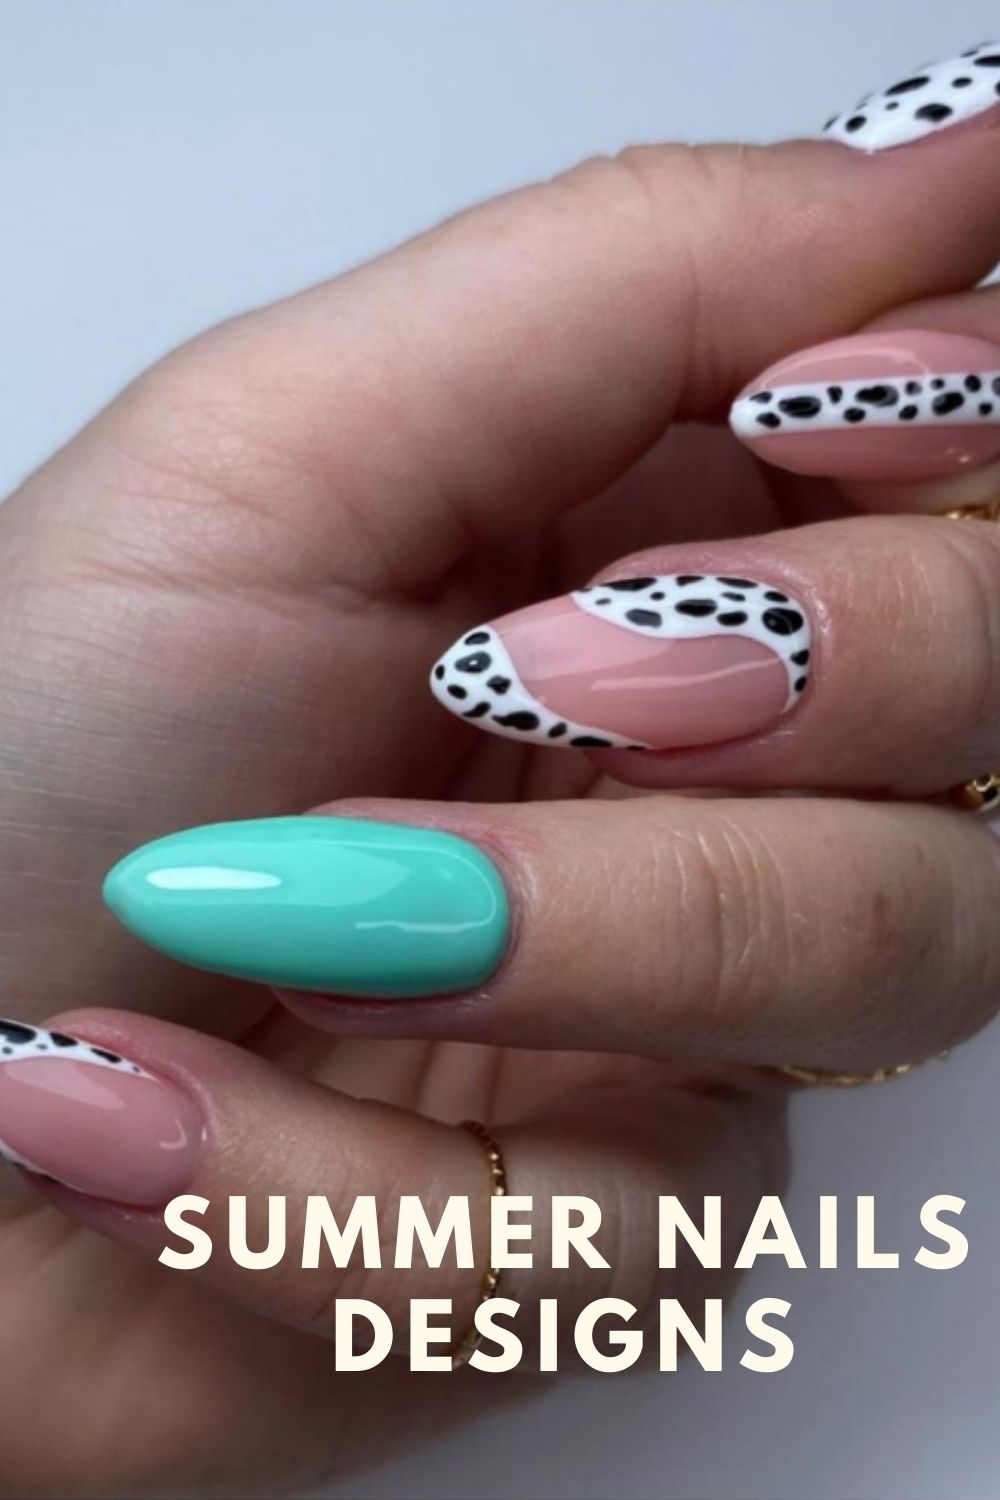 Pink and white almond nails